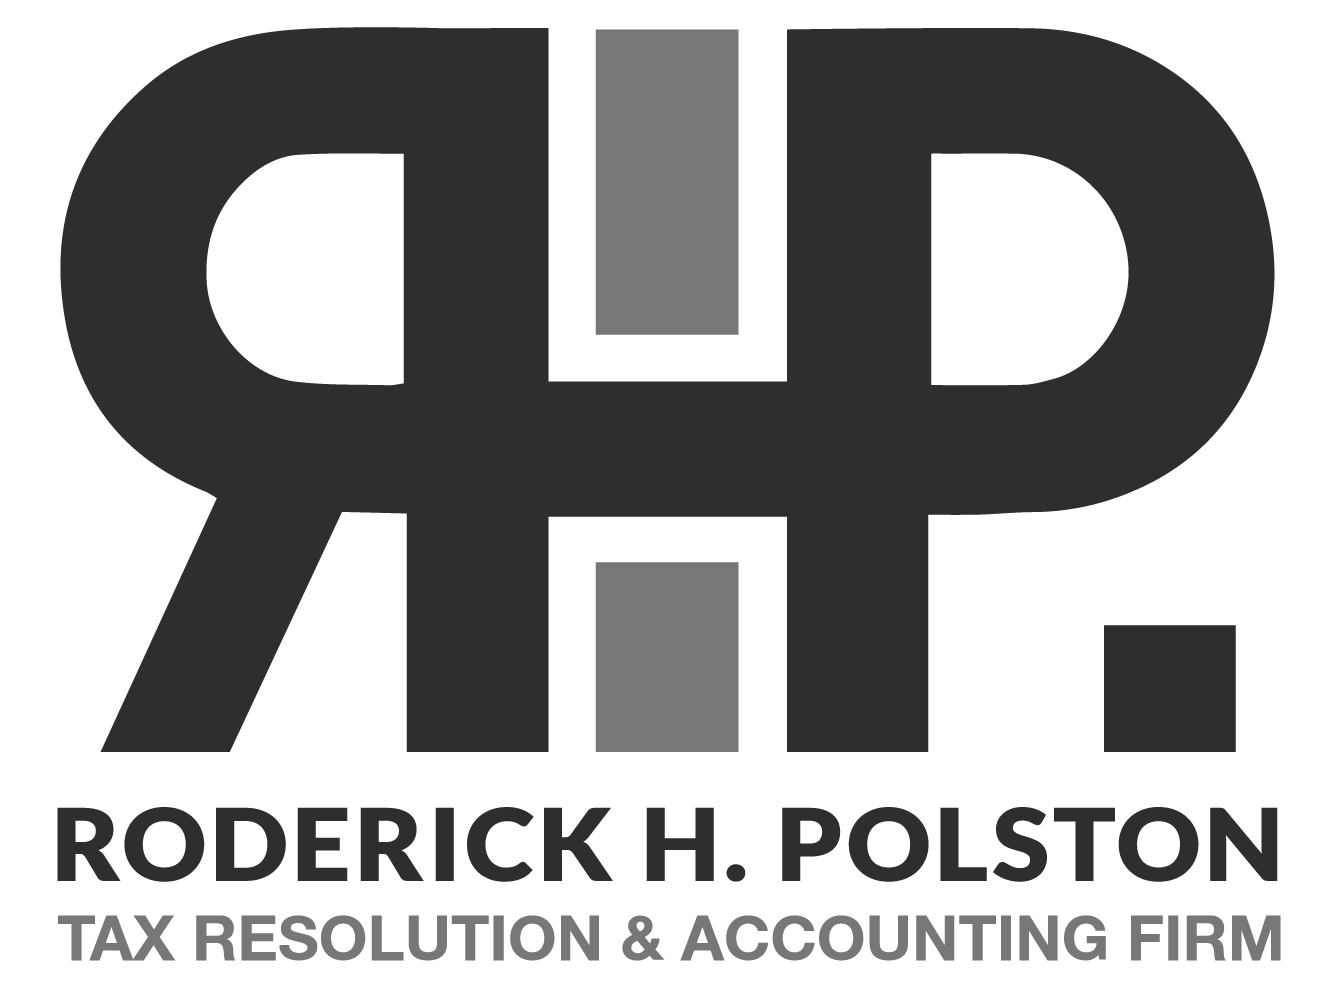 Roderick H. Polston • Tax Resolution & Accounting Firm